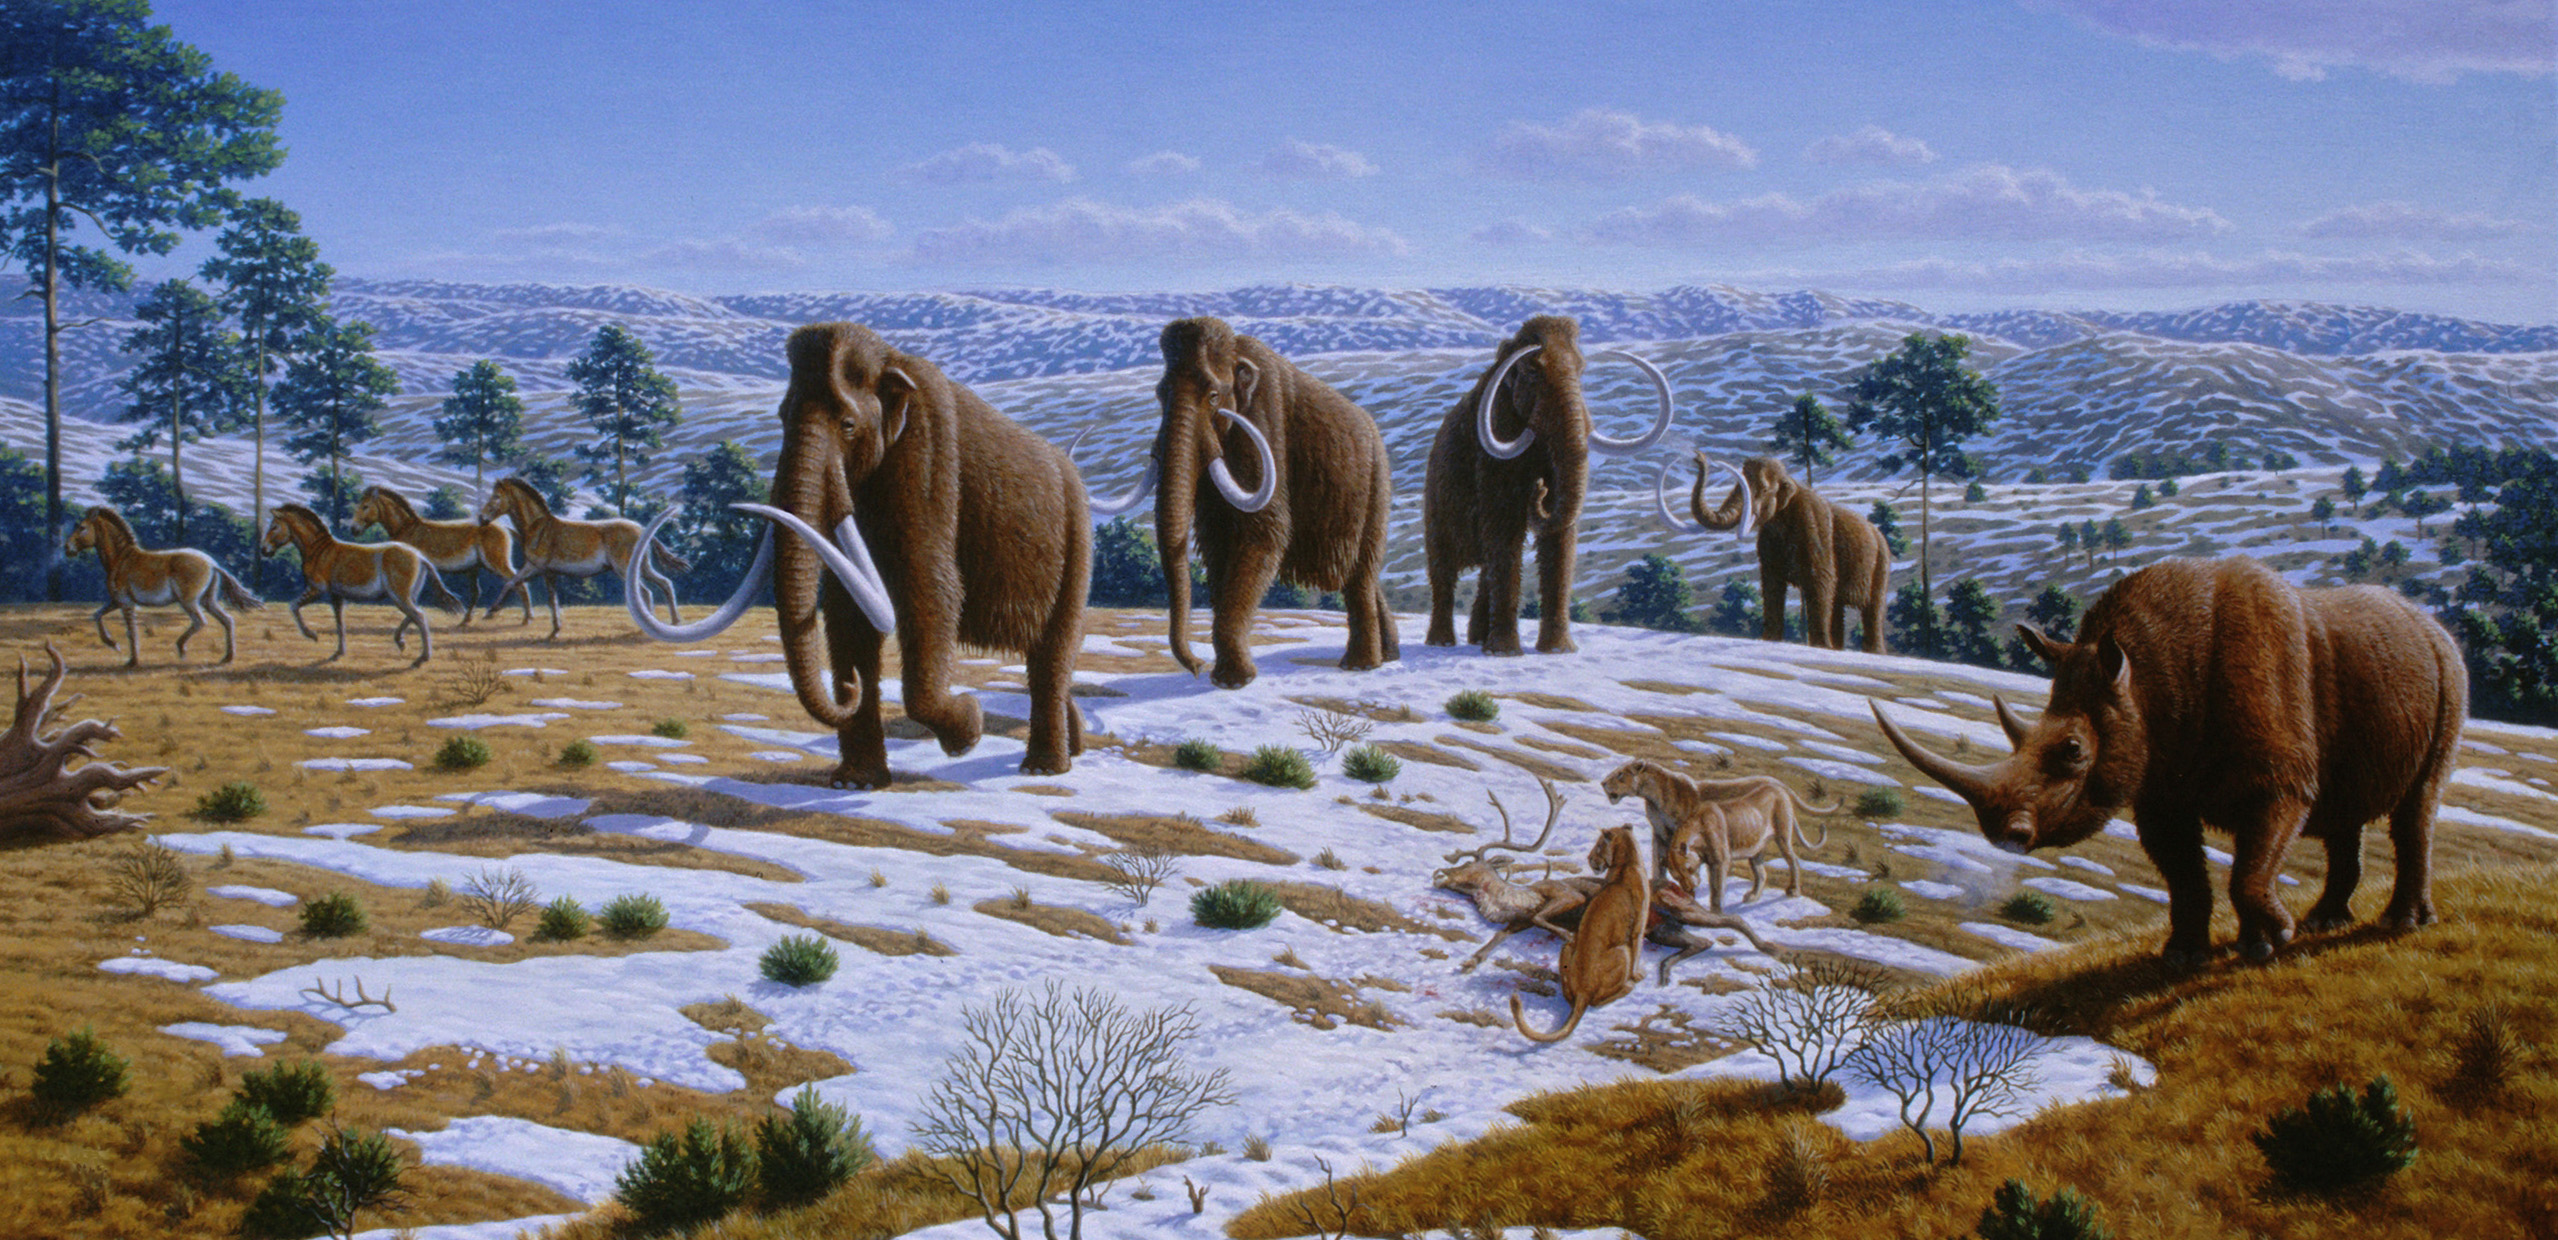 woolly_mammoth_siberian_tundra-1